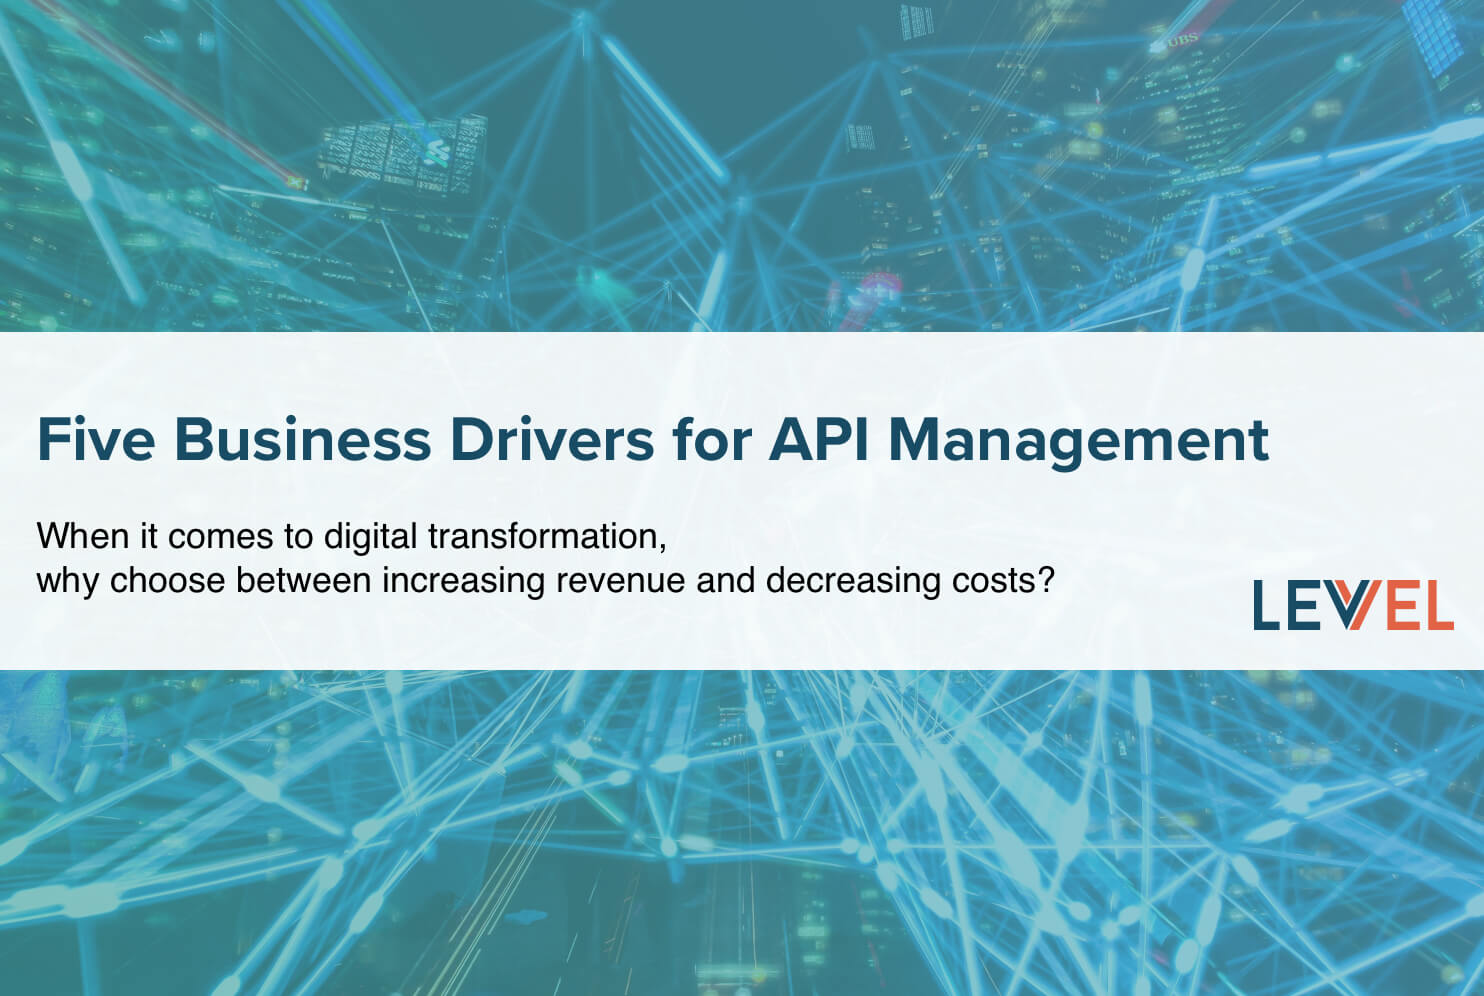 Five Business Drivers for API Management